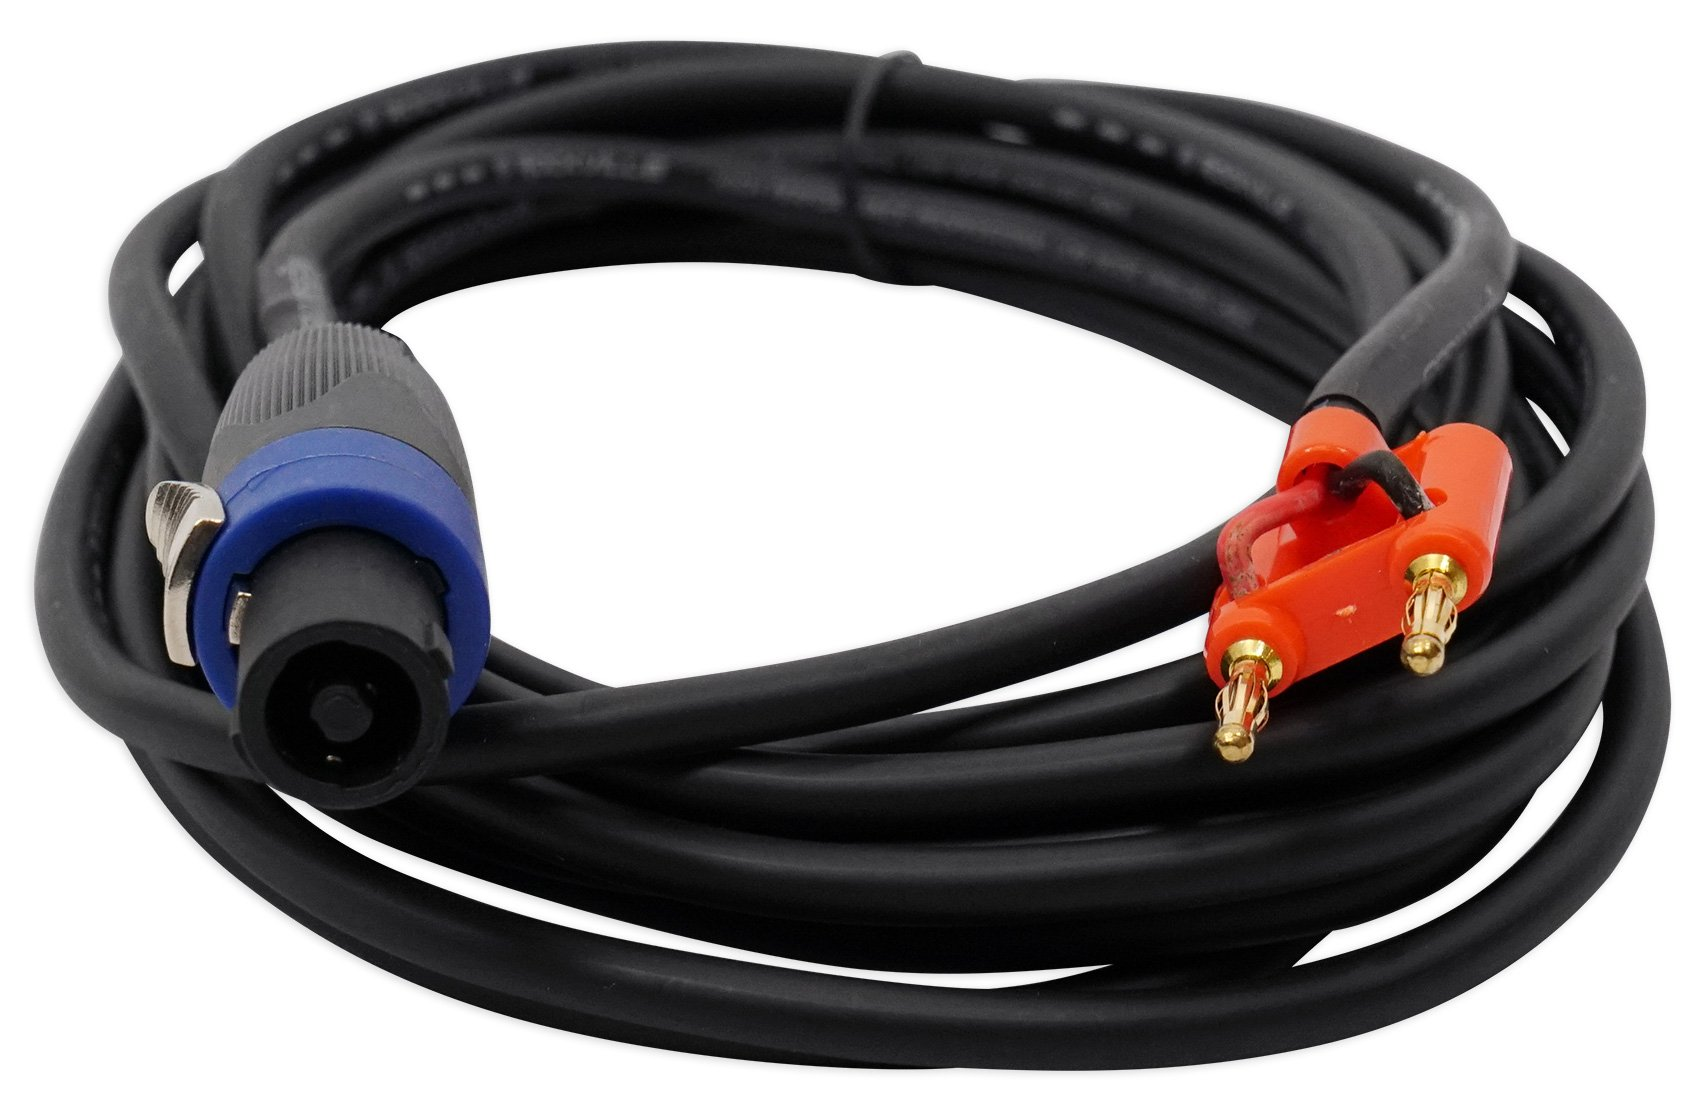 Rockville 20 Foot Speakon to Banana Speaker Cable, 16 Gauge, 100% Copper (RSB16) by Rockville